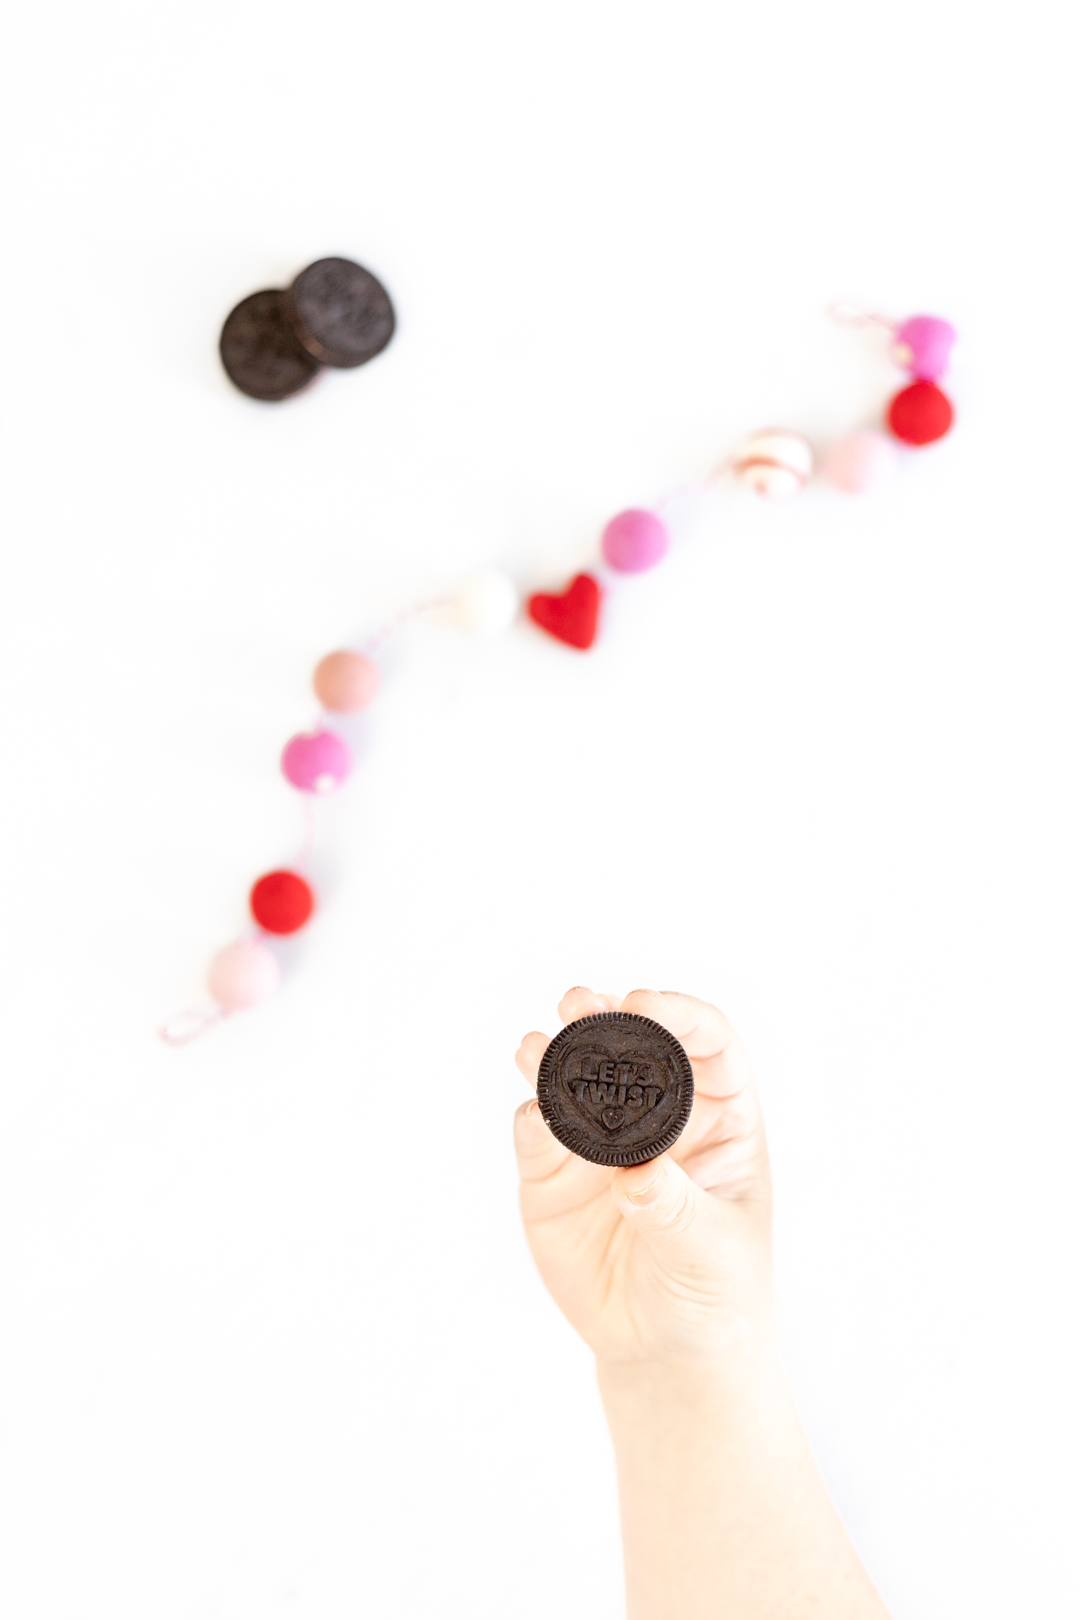 OREO Love Cookies for Valentine's Day